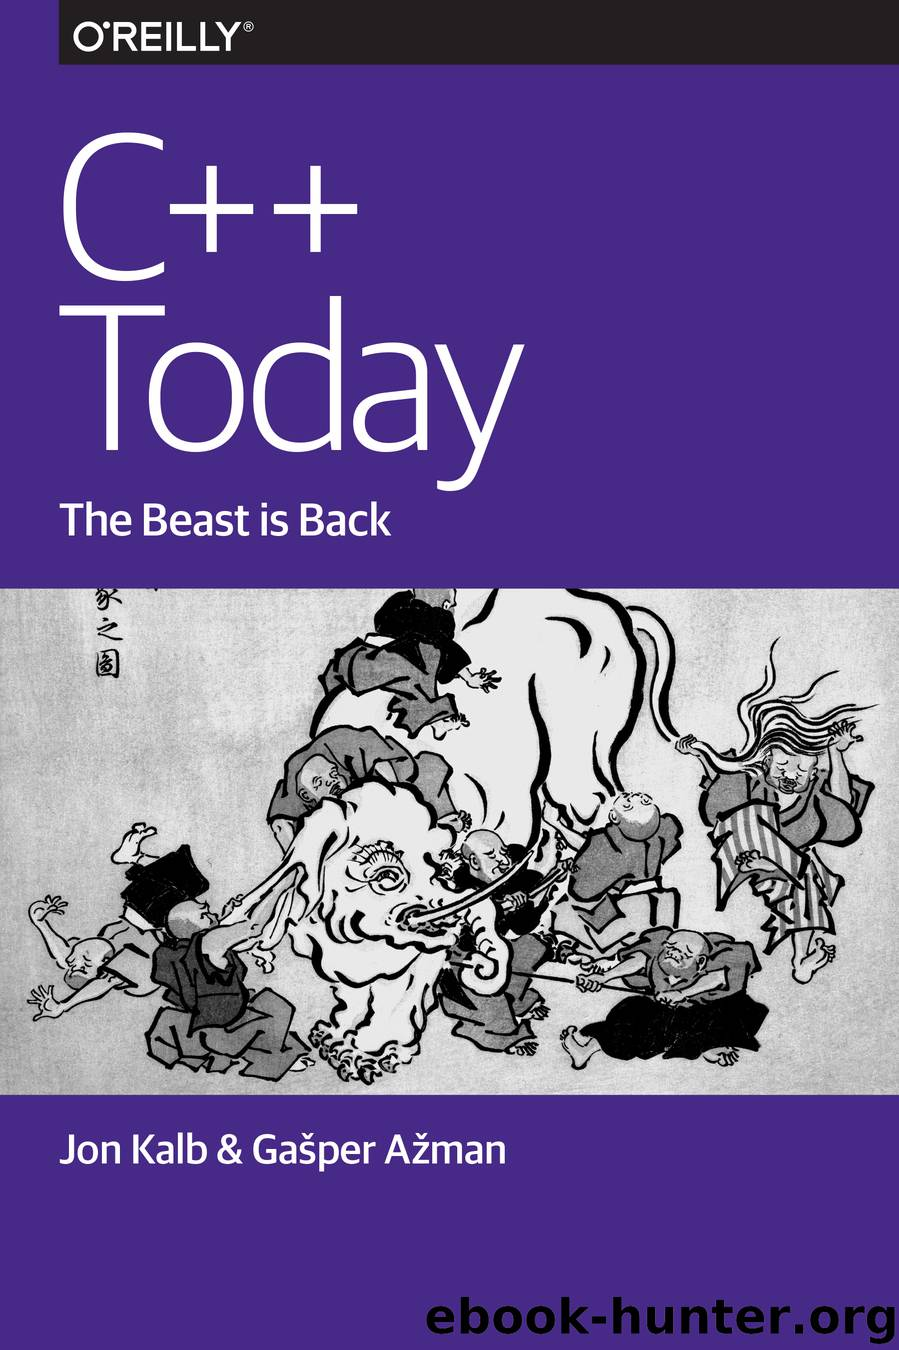 C++ Today: The Beast Is Back by John Kalb & Gašper Ažman